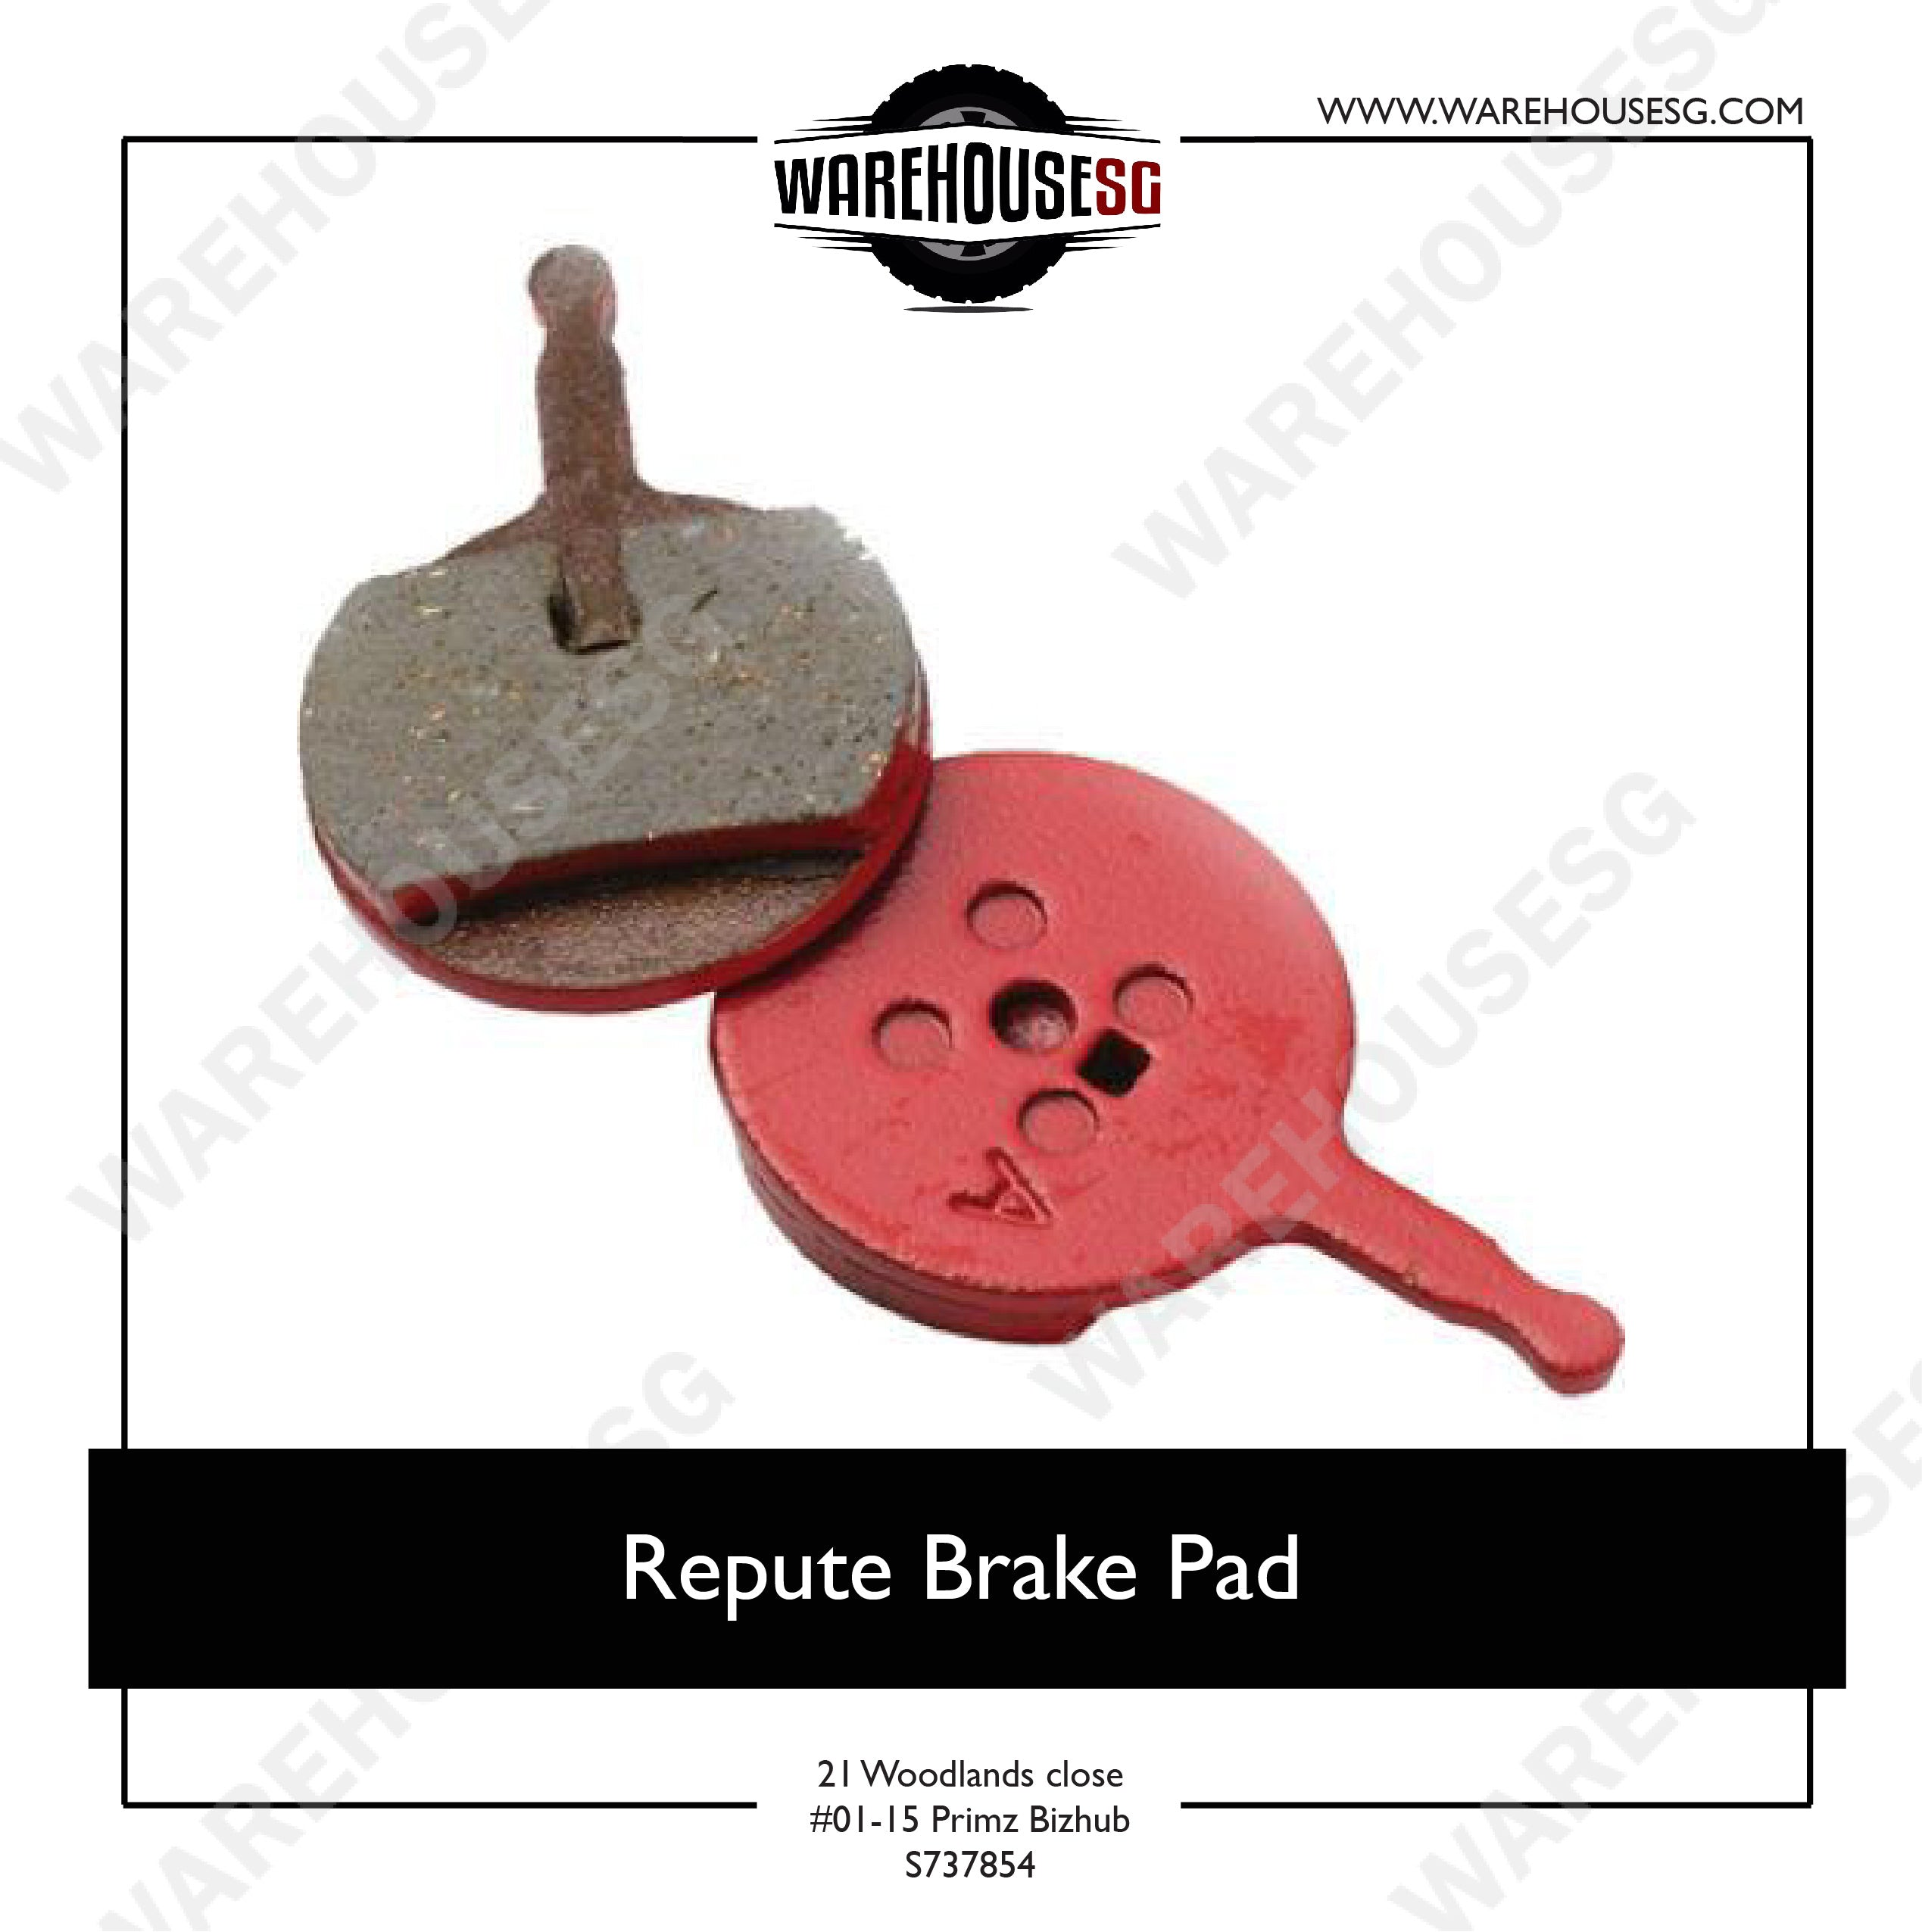 Repute Brake Pad